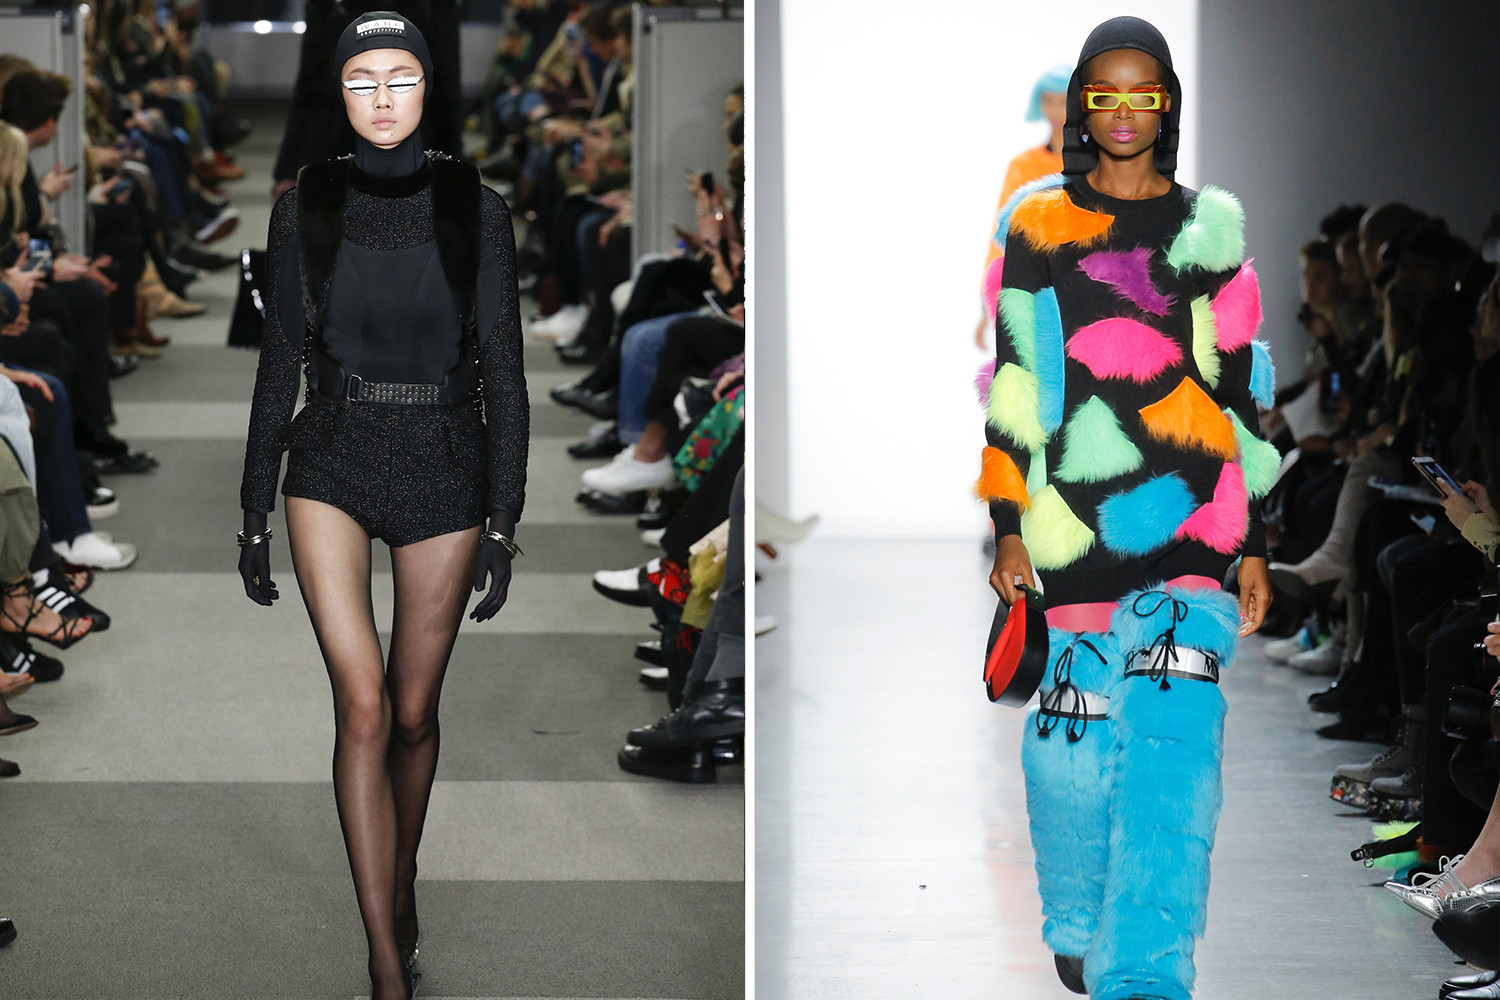 New York Fashion Week Accessories Runway Trends 2018 Alexander Wang Adam Selman Pyer Moss Fall/Winter 2018